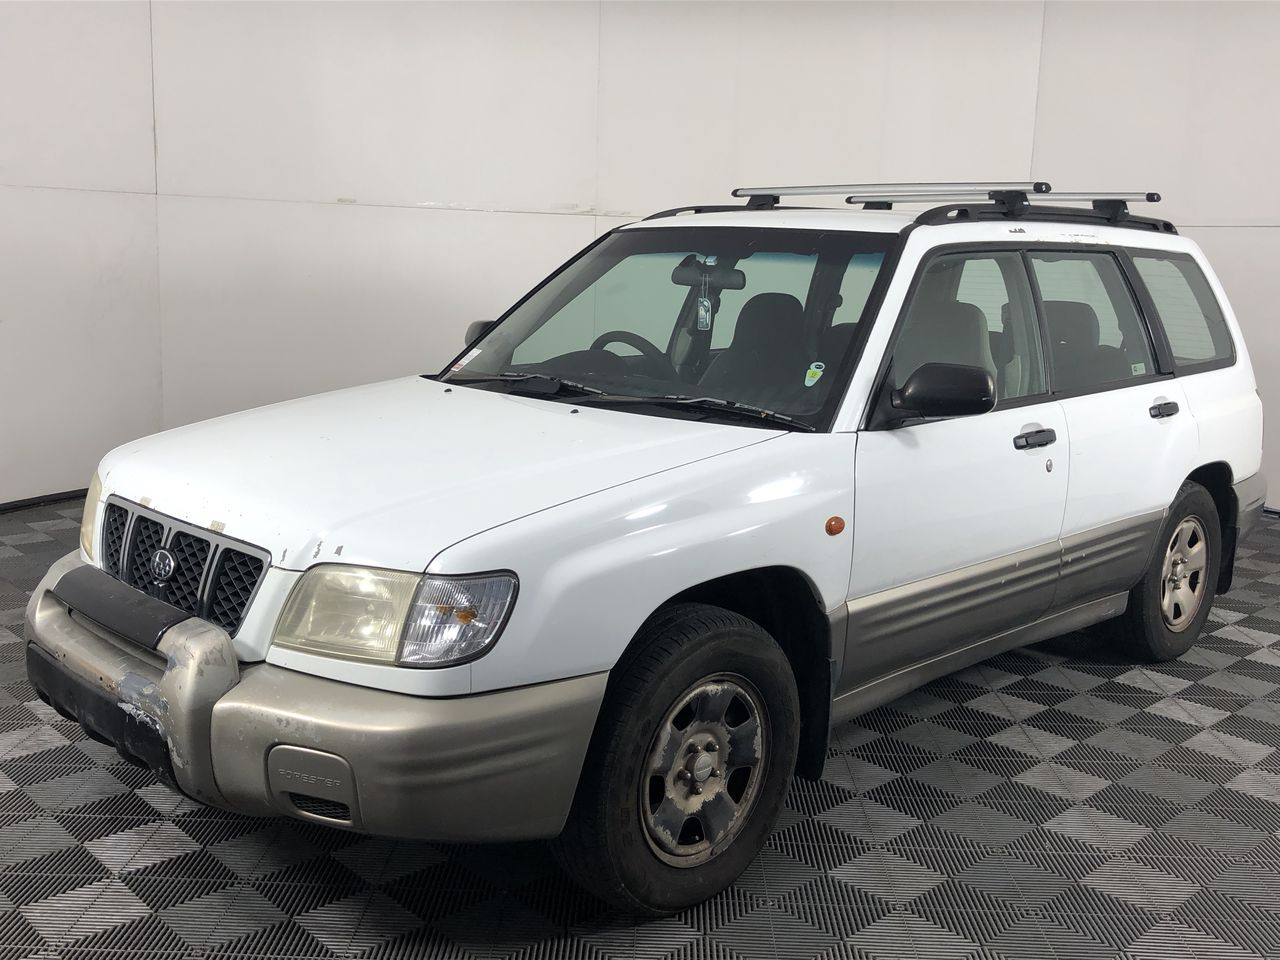 2001 Subaru Forester Limited Automatic Wagon